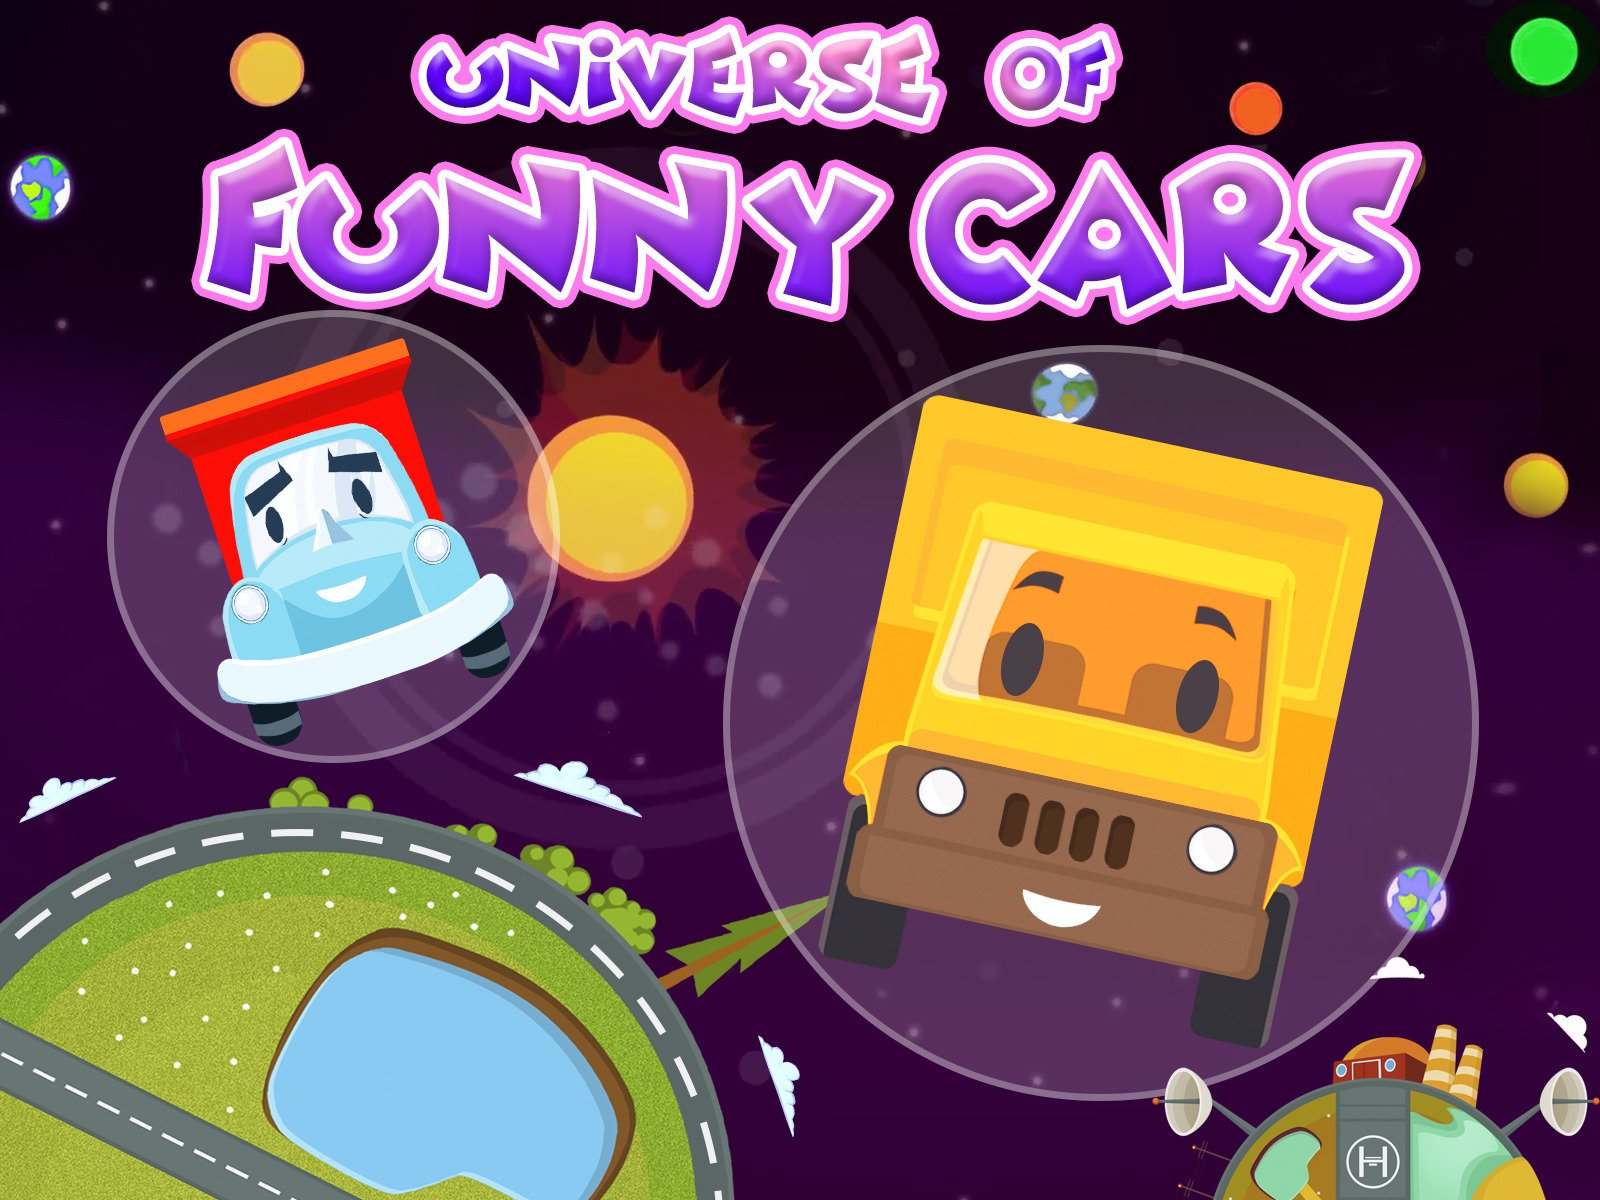 Universe of Funny Cars on Amazon Prime Video UK